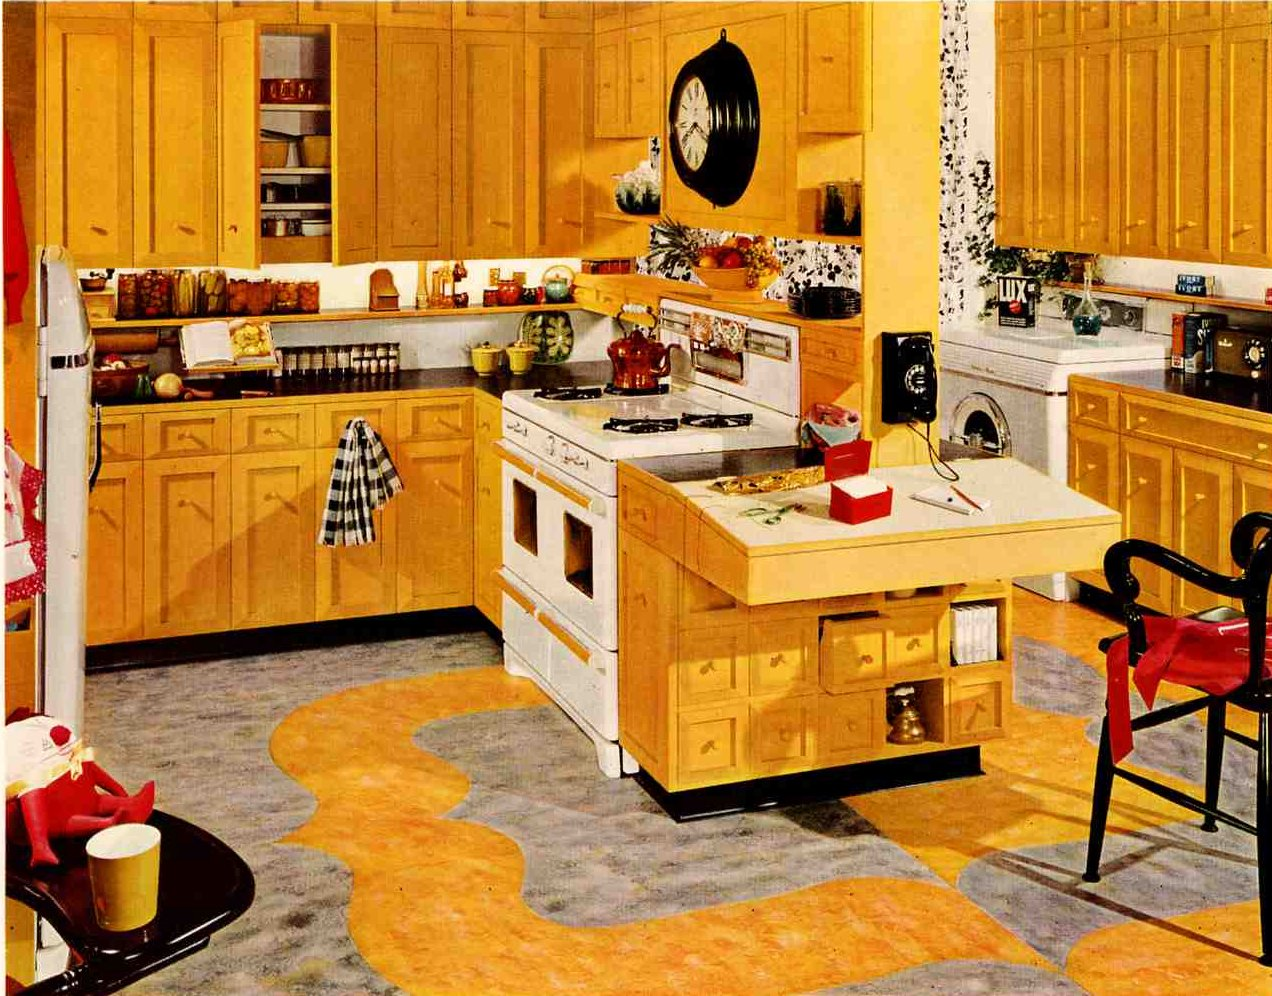 Retro Kitchen Design | 1272 x 996 · 296 kB · jpeg | 1272 x 996 · 296 kB · jpeg